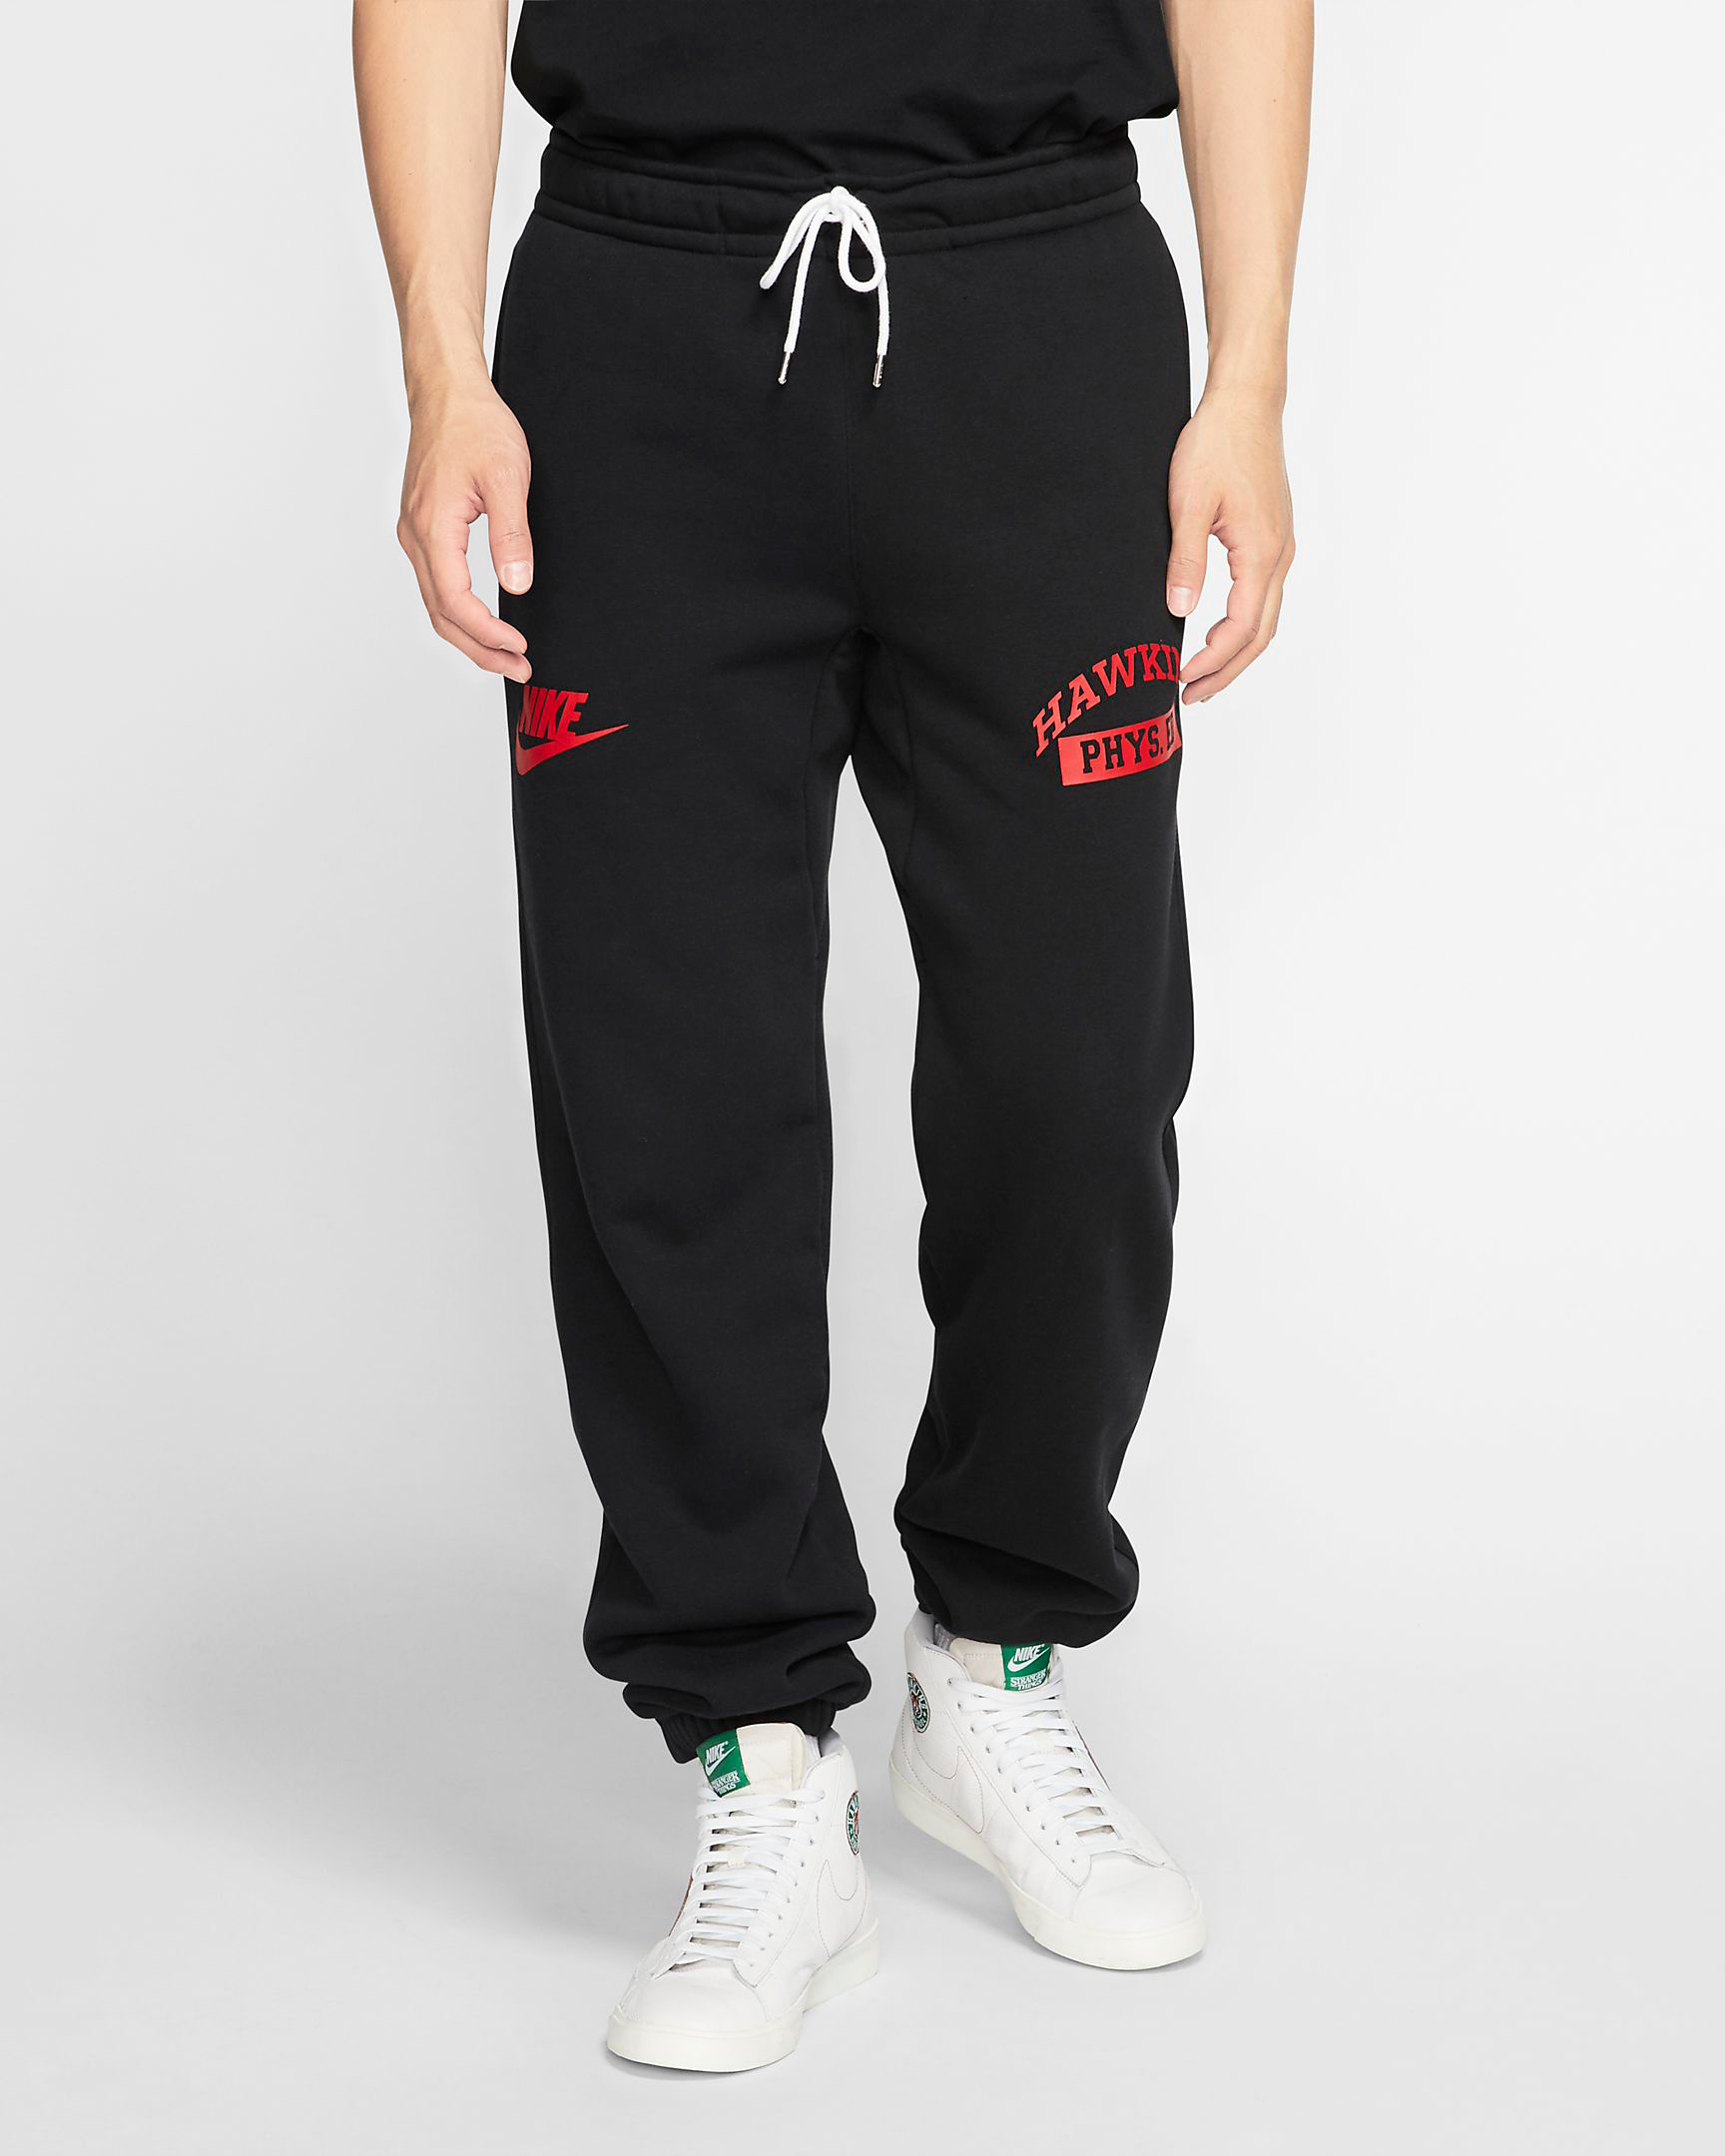 nike-stranger-things-upside-down-black-red-jogger-pants